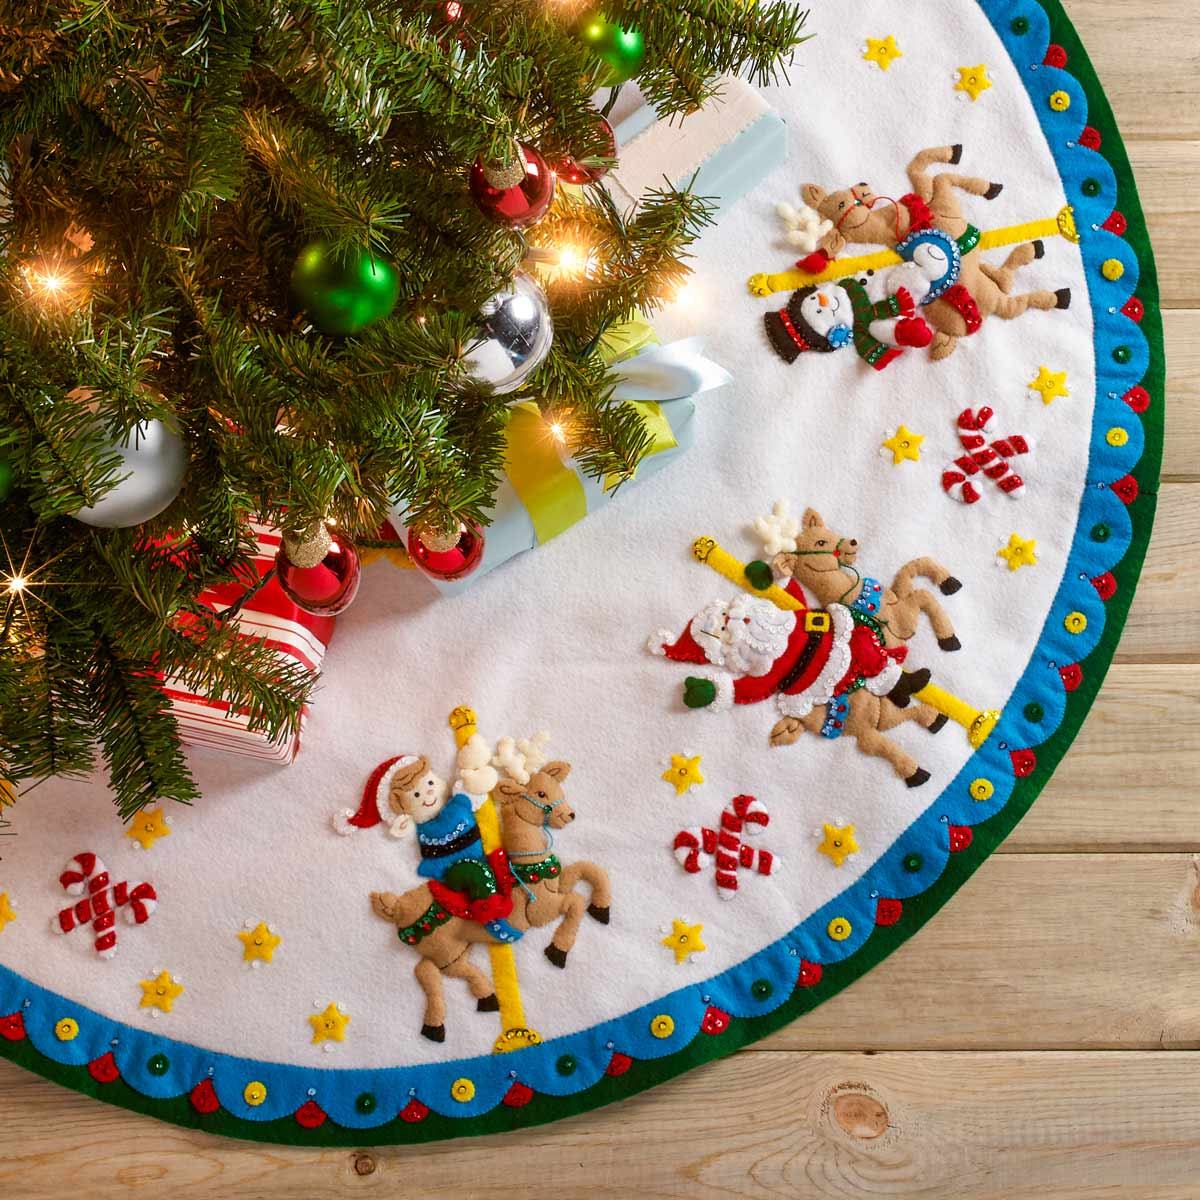 Bucilla ® Seasonal - Felt - Tree Skirt Kits - Carousel Santa - 86951E